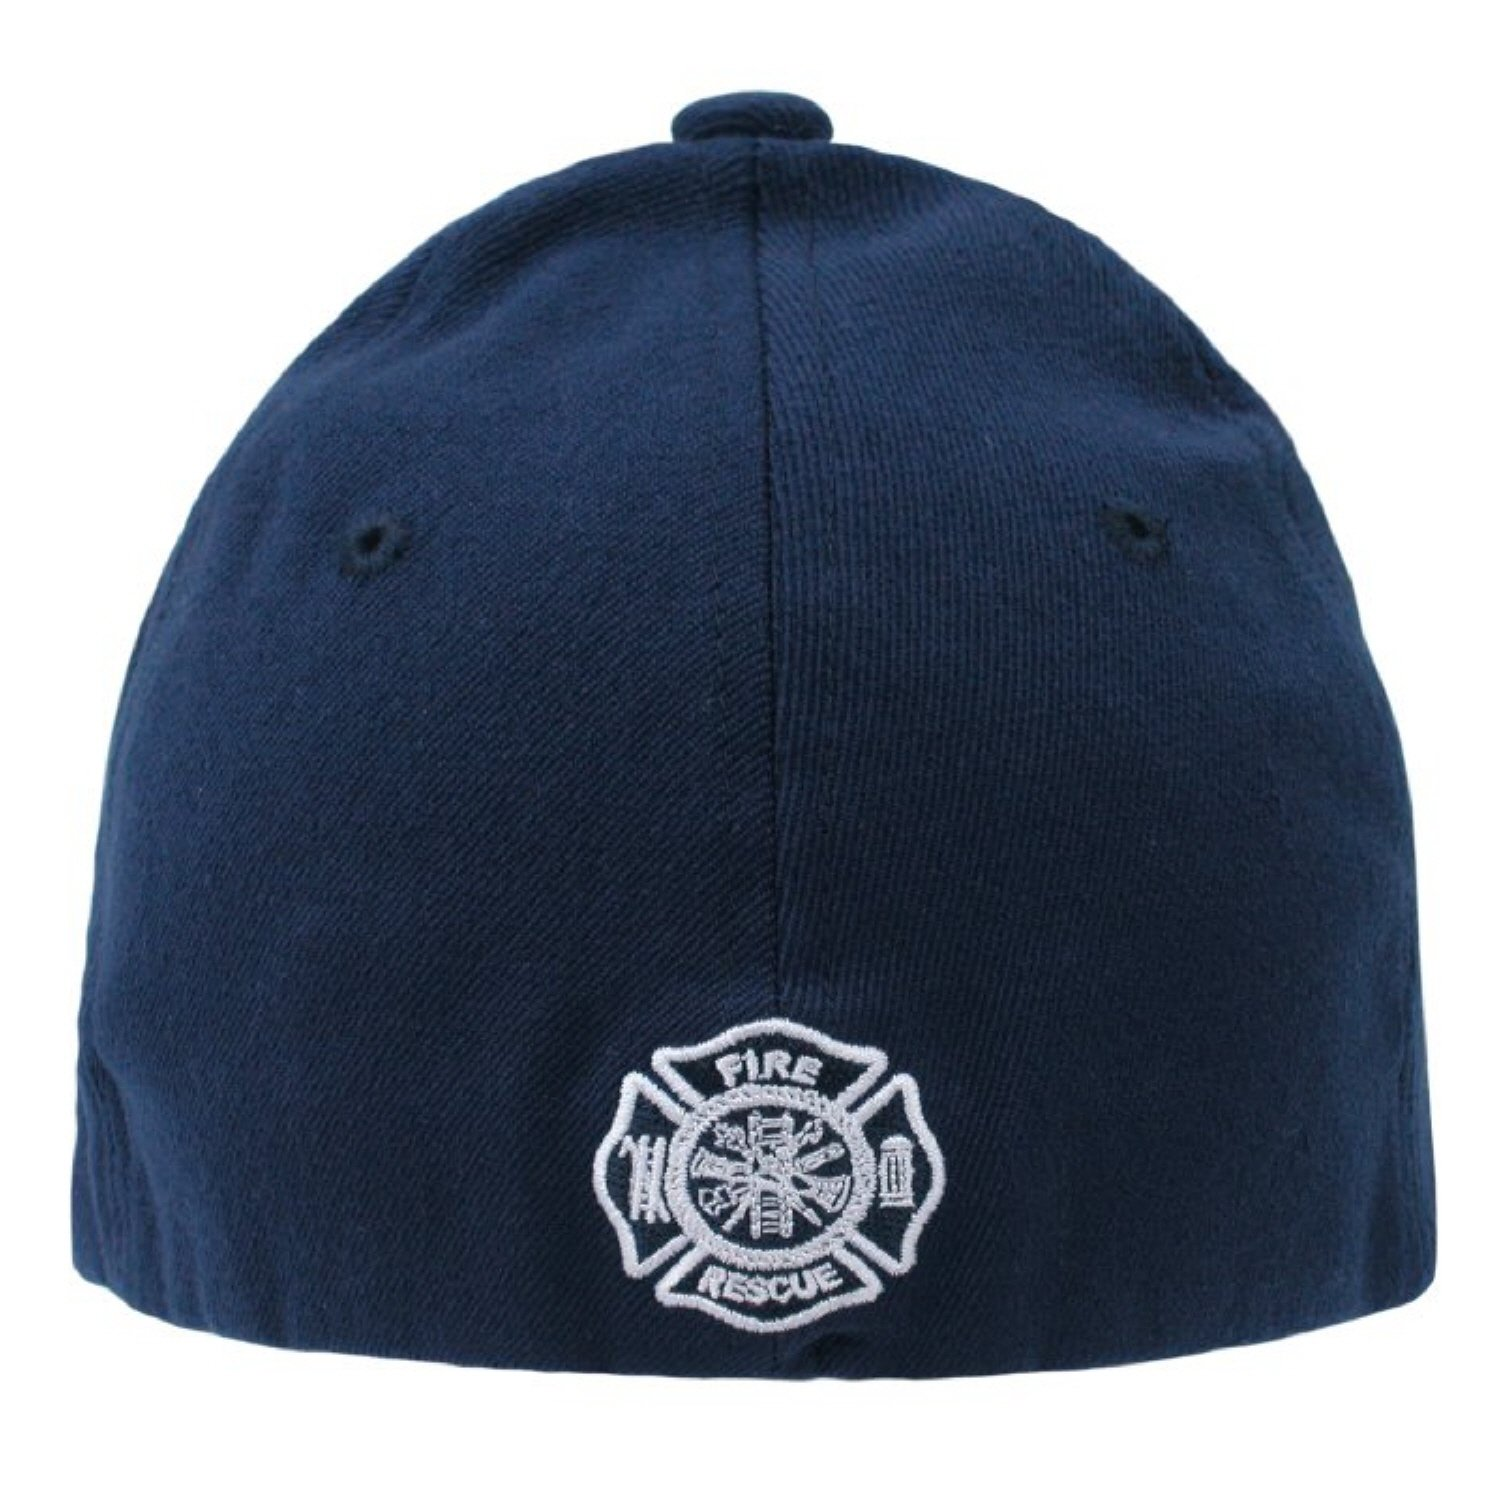 Fire Dept Fire Rescue Stretch Fitted Military Law Hats S//M